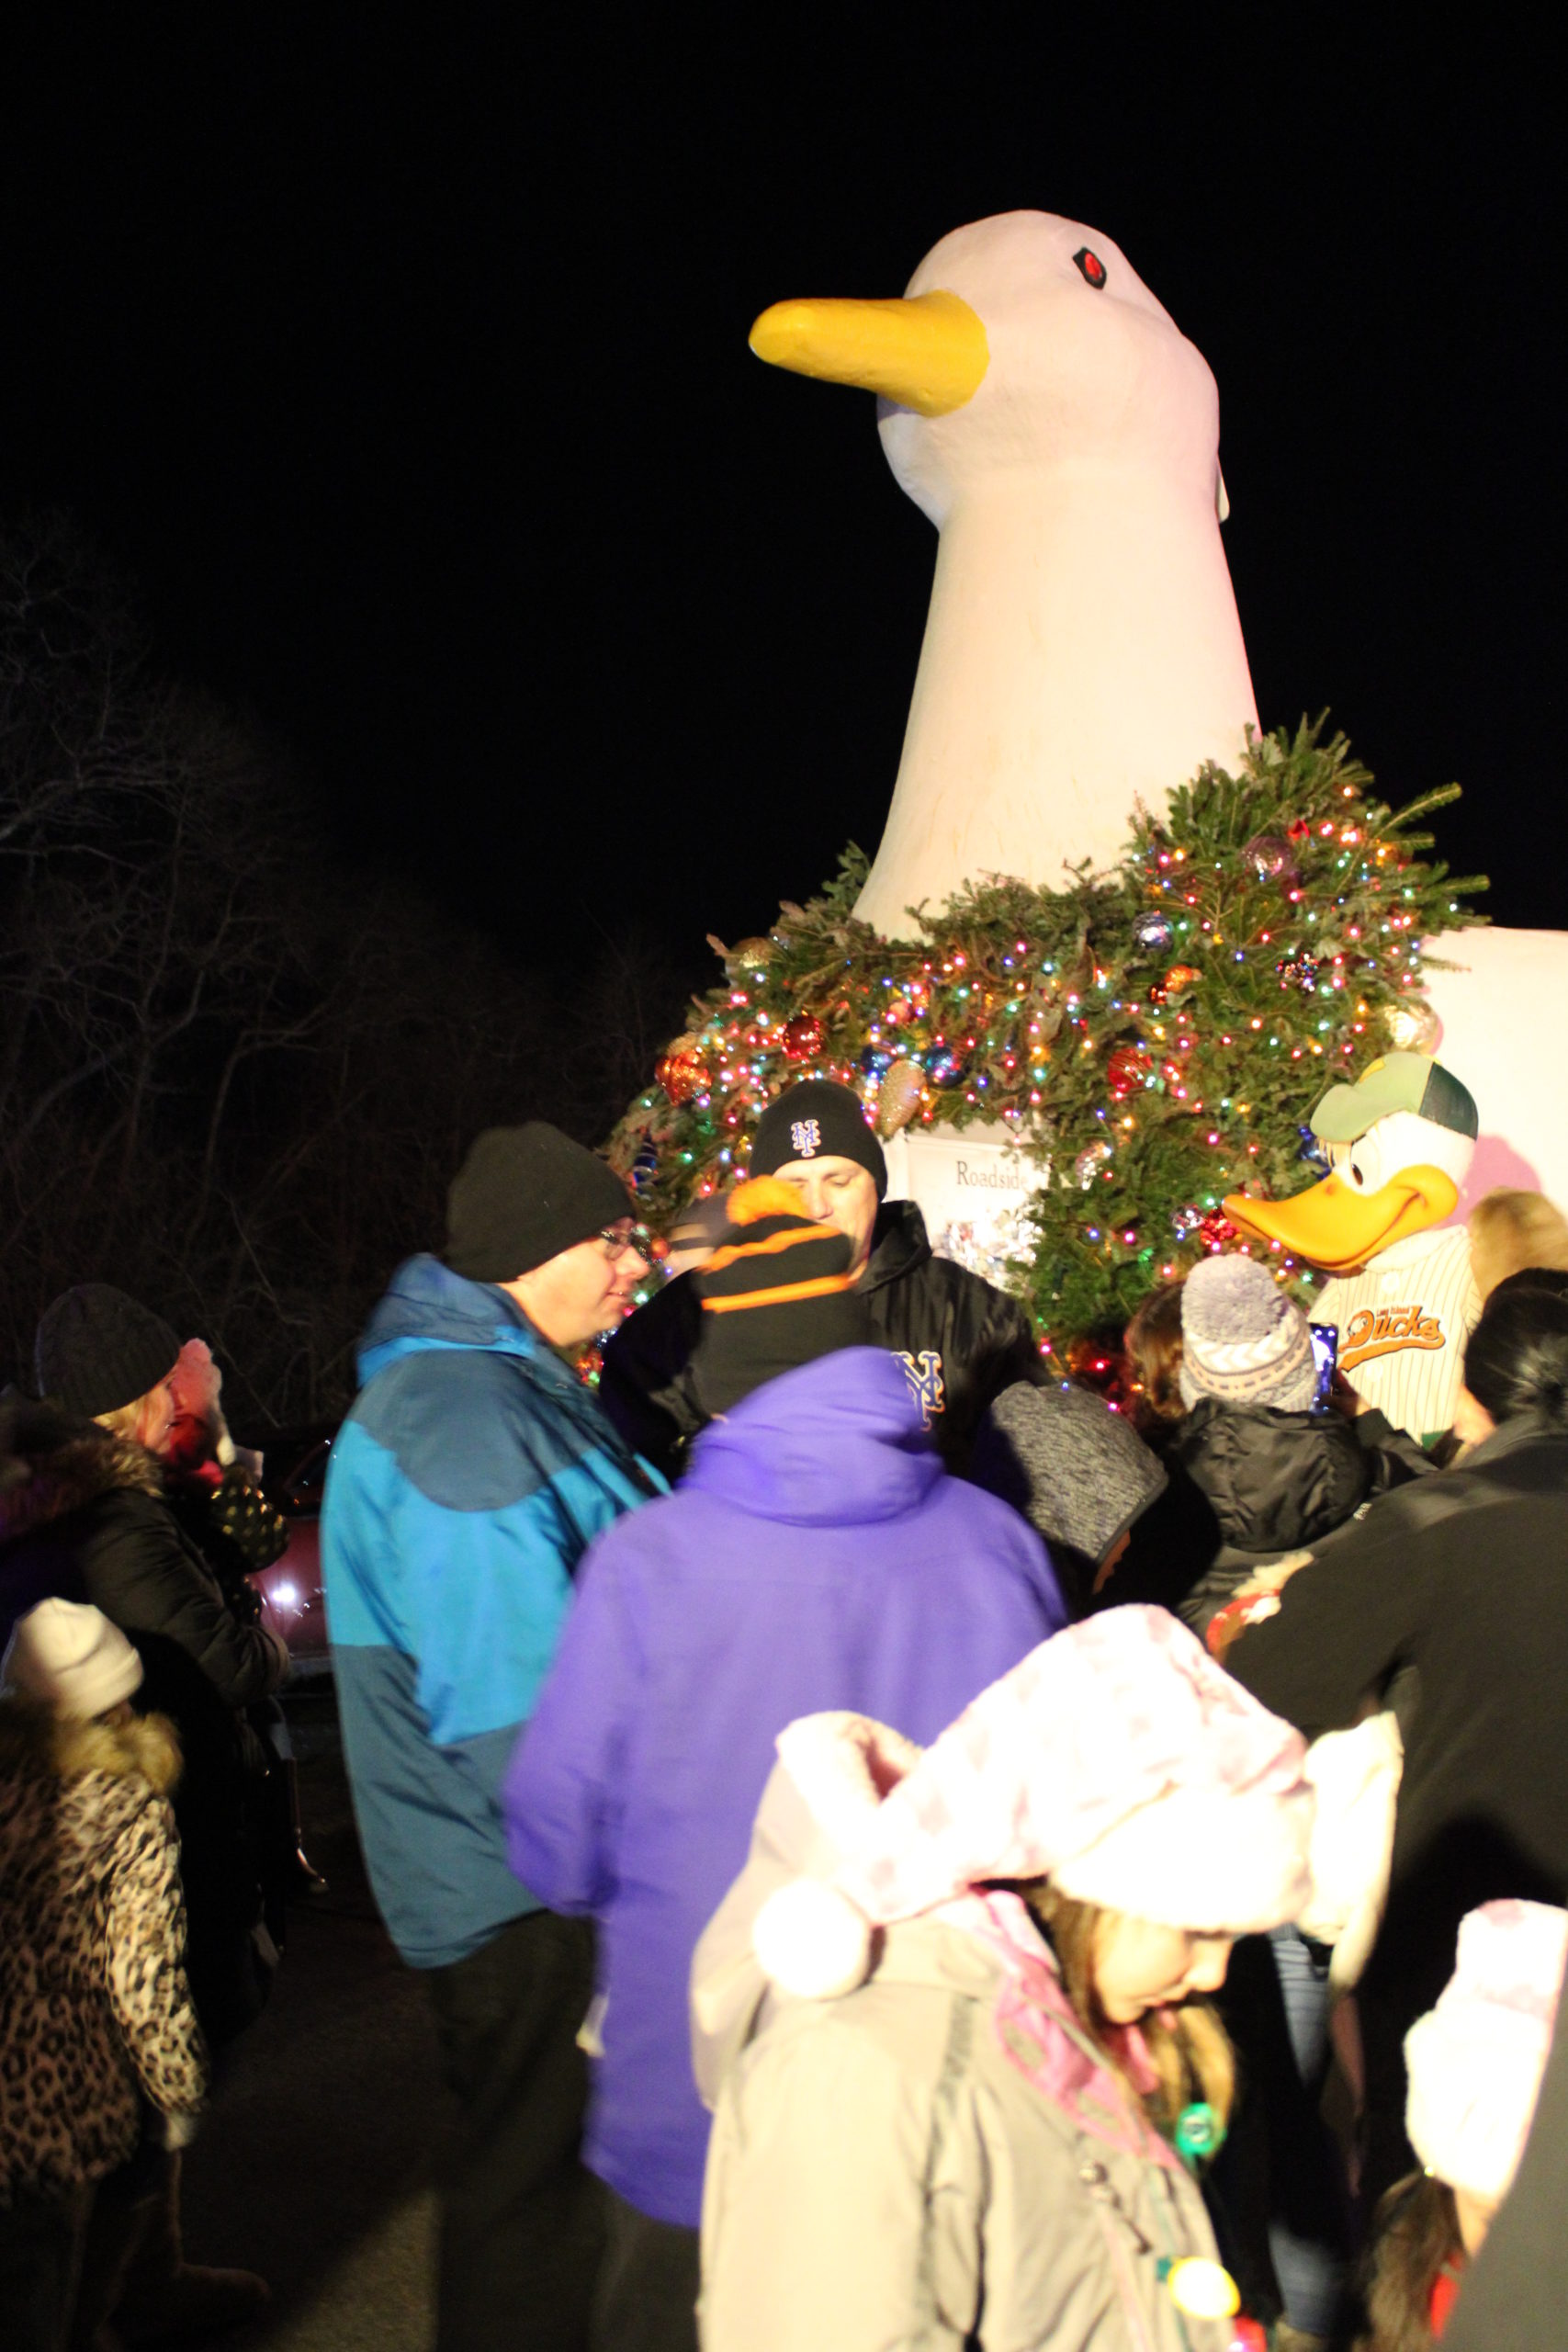 The Big Duck lighting in Flanders was on Monday night.